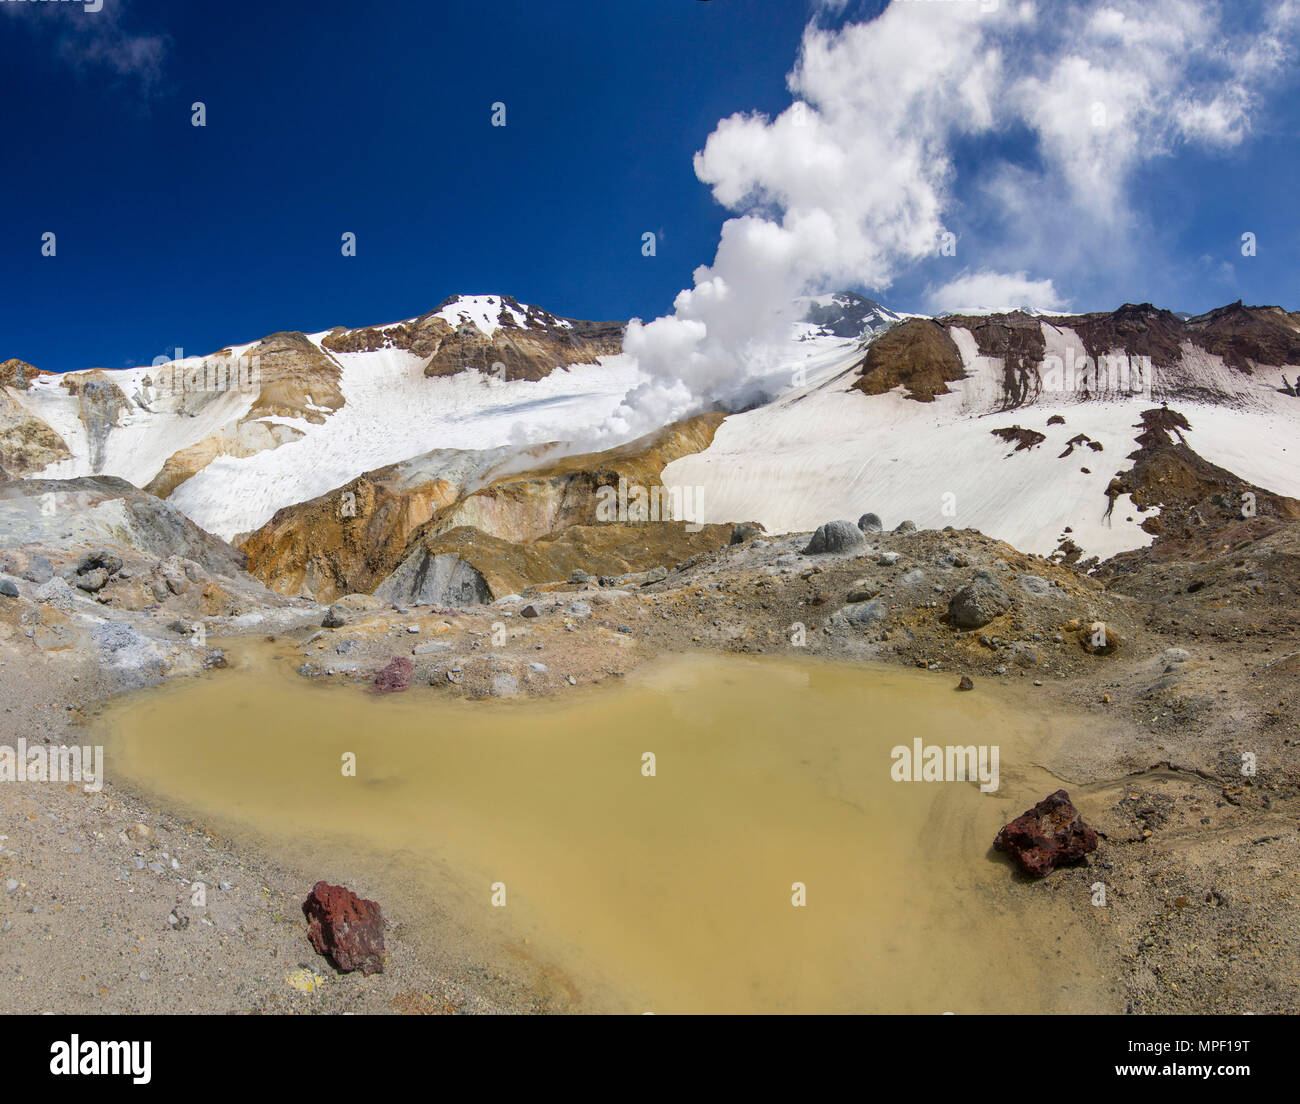 steaming crater of active volcano covered by snow - Stock Image